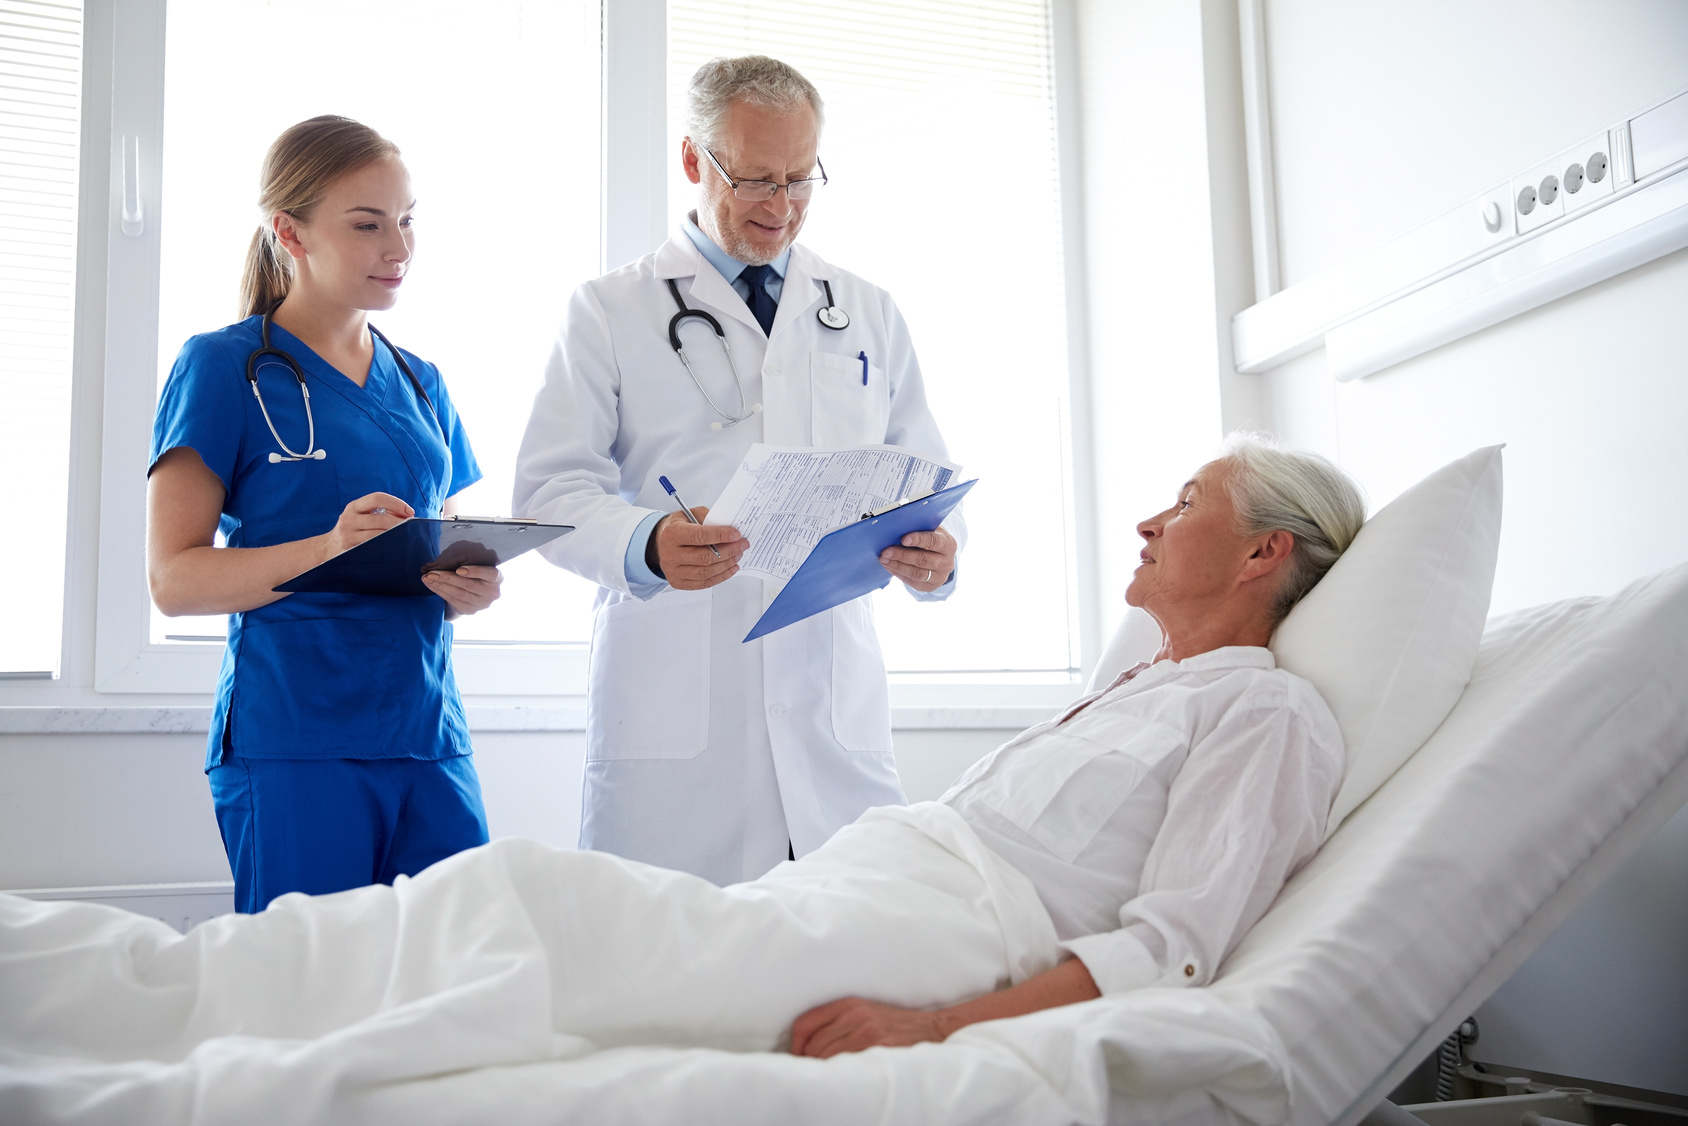 Physicians' Age Linked to Patients' Mortality Risk